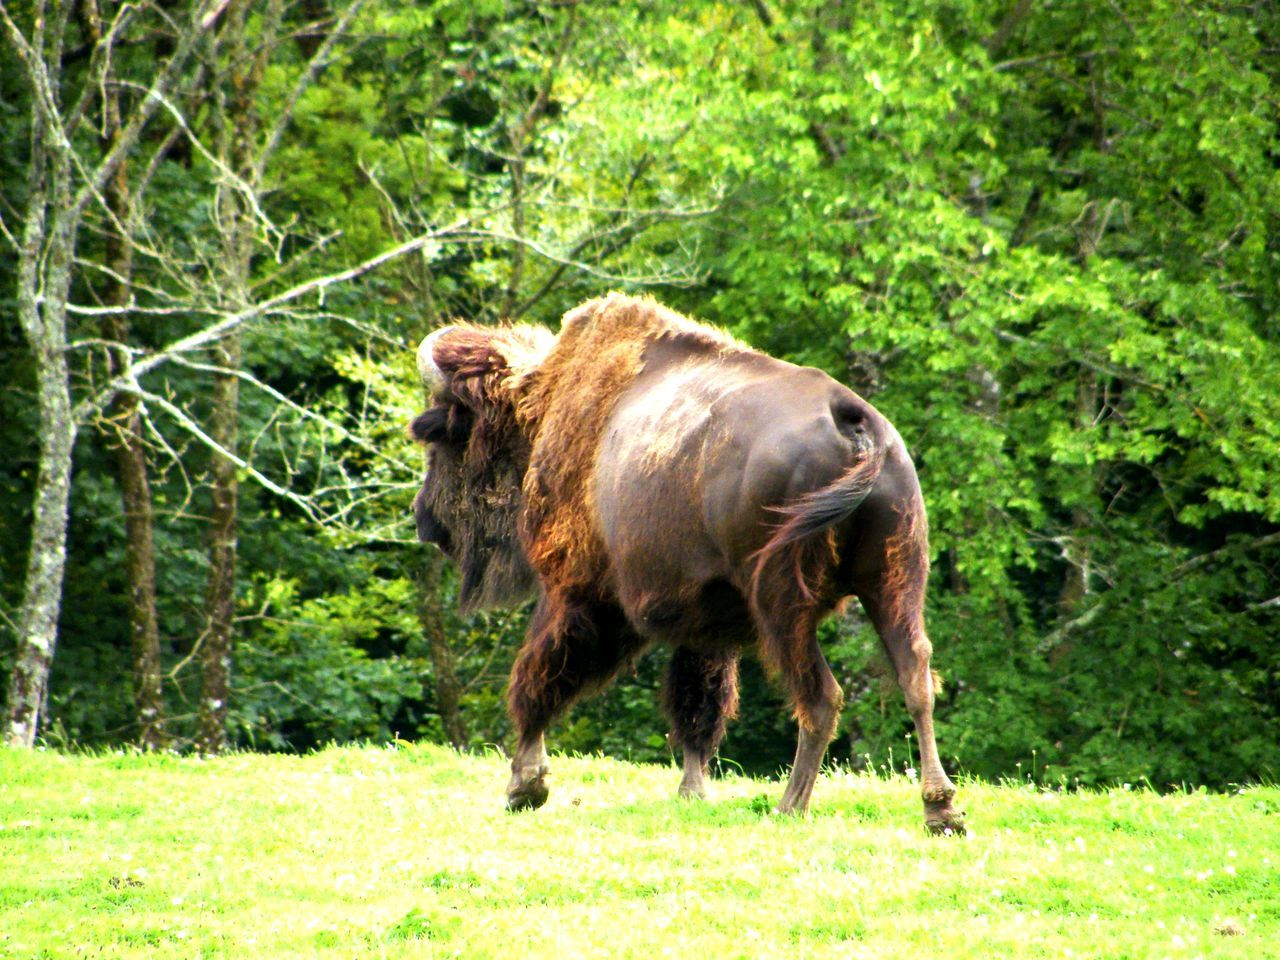 Animal Themes Beauty In Nature Bison Day Domestic Animals European Bison Field Grass Green Color Growth Livestock Mammal Nature No People One Animal Outdoors Wisent